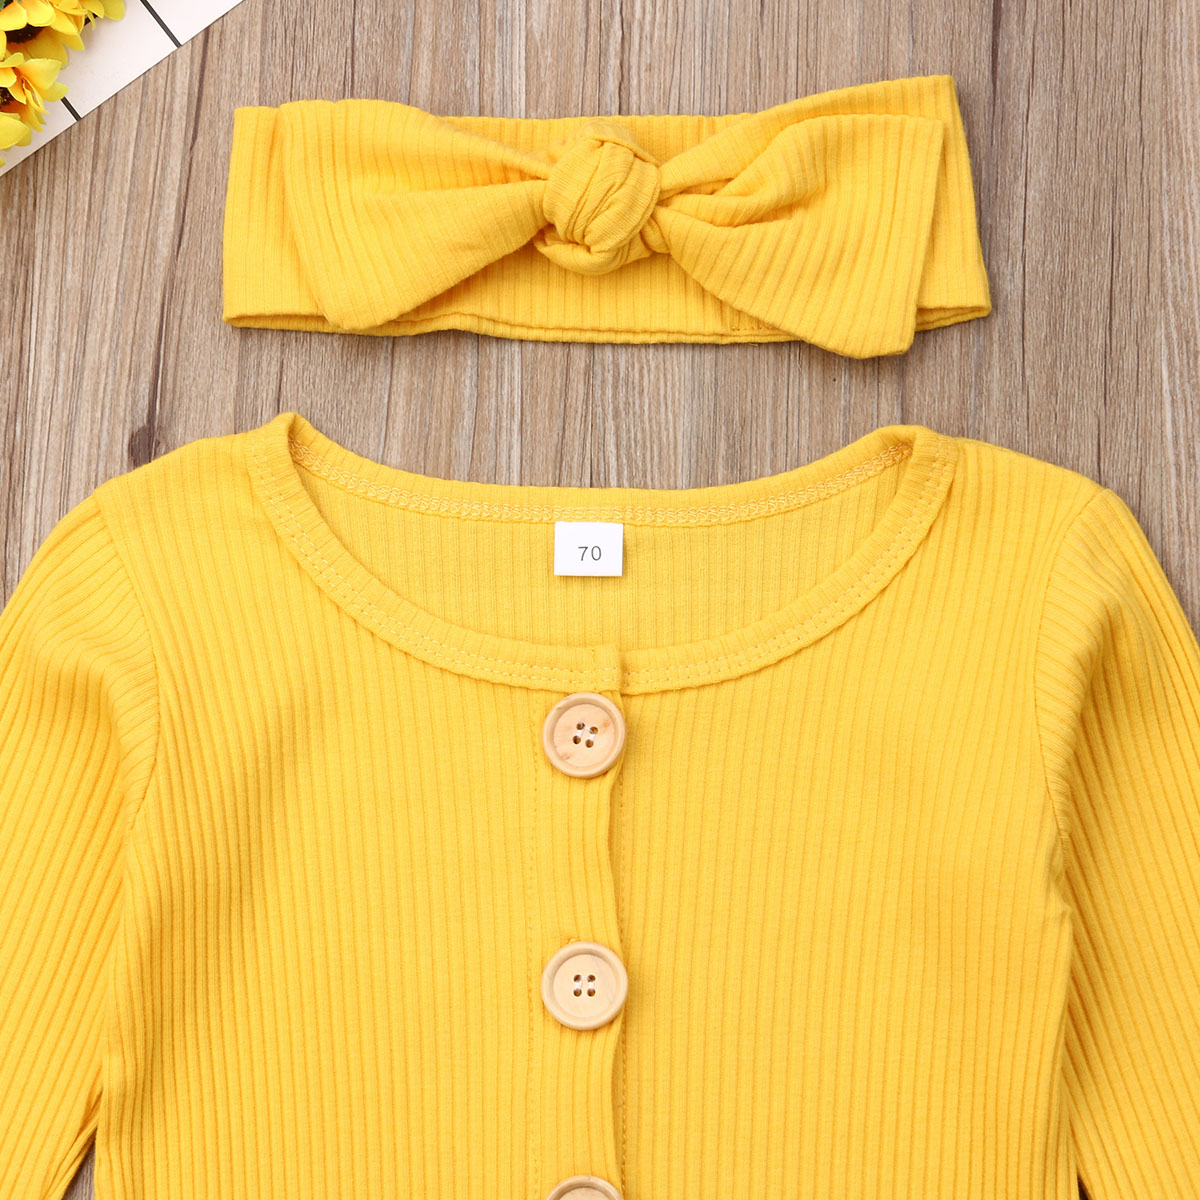 H65d5fa5d2a5f4c12a95ad17f9f29407d4 Spring Fall Newborn Baby Girl Boy Clothes Long Sleeve Knitted Romper + Headband Jumpsuit 2PCS Outfit 0-24M